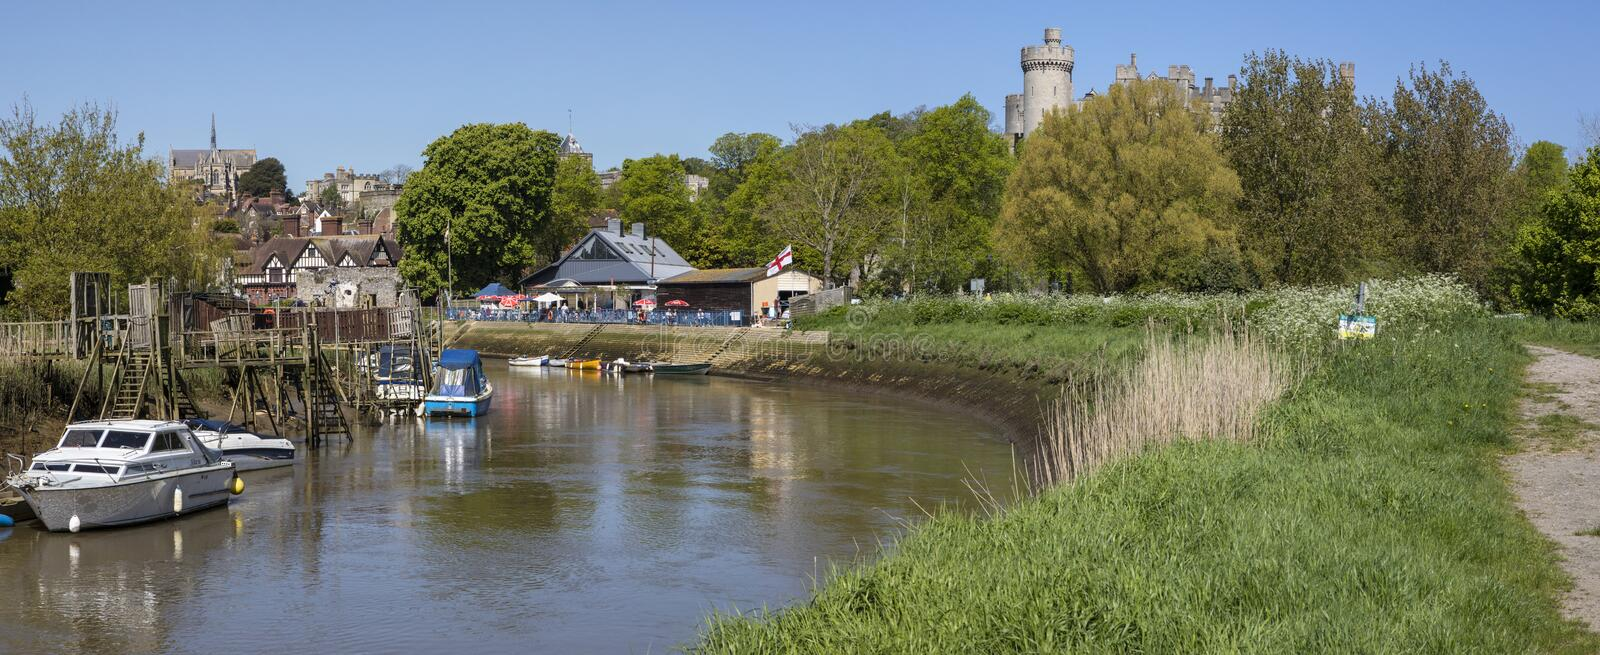 Arundel in West Sussex royalty free stock photography